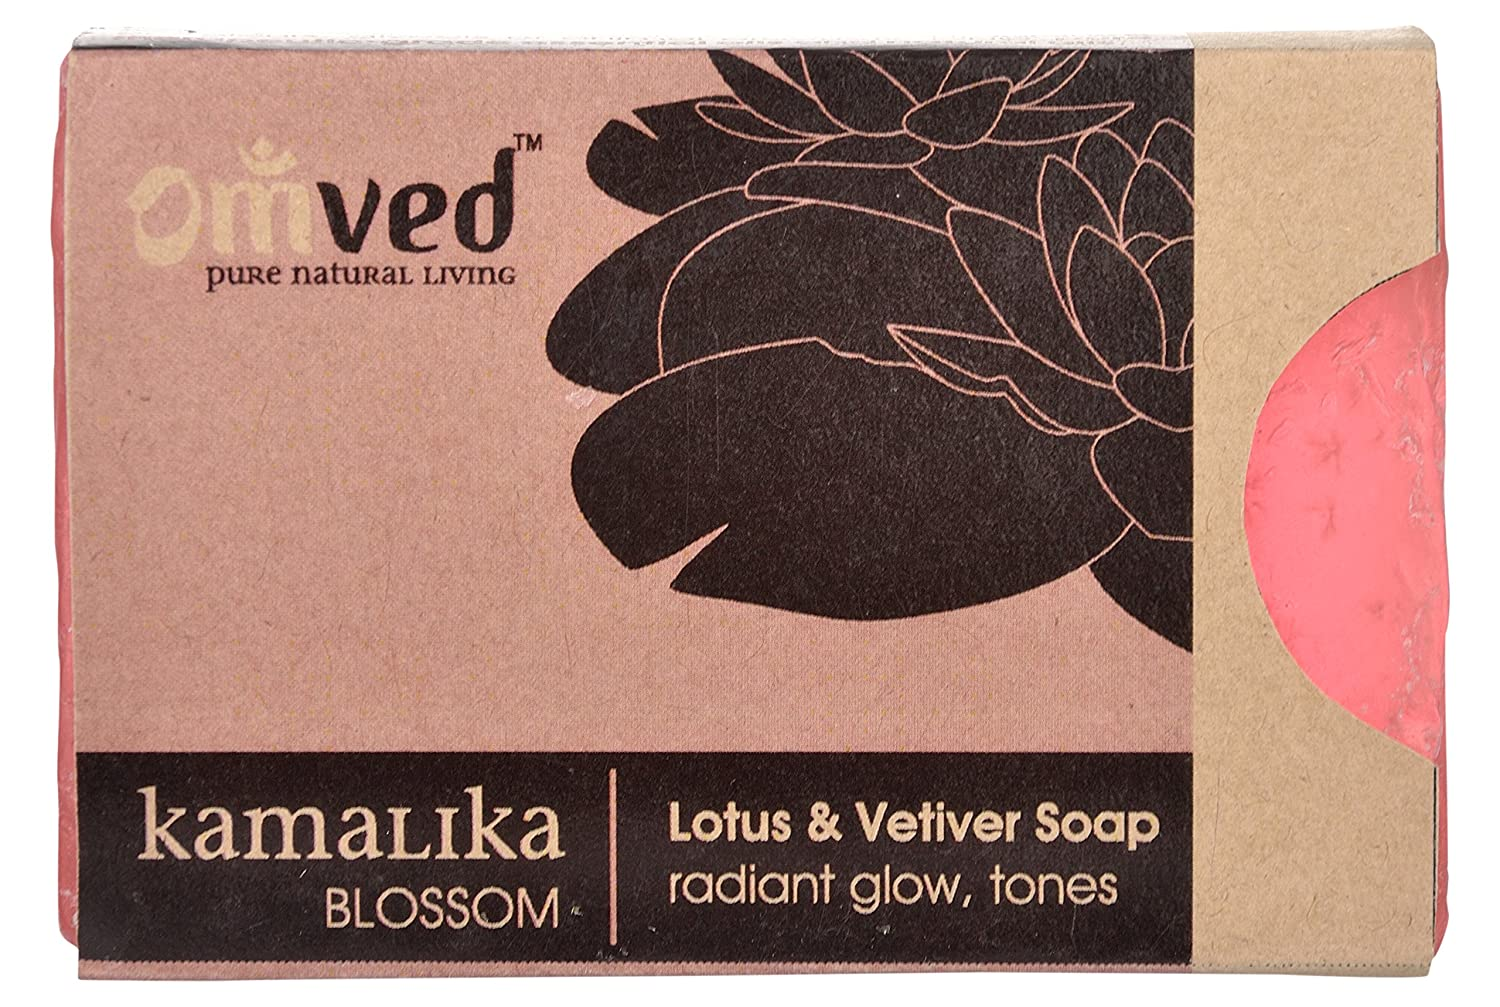 Omved KAMALIKA - Blossom Natural Lotus & Vetiver Handmade